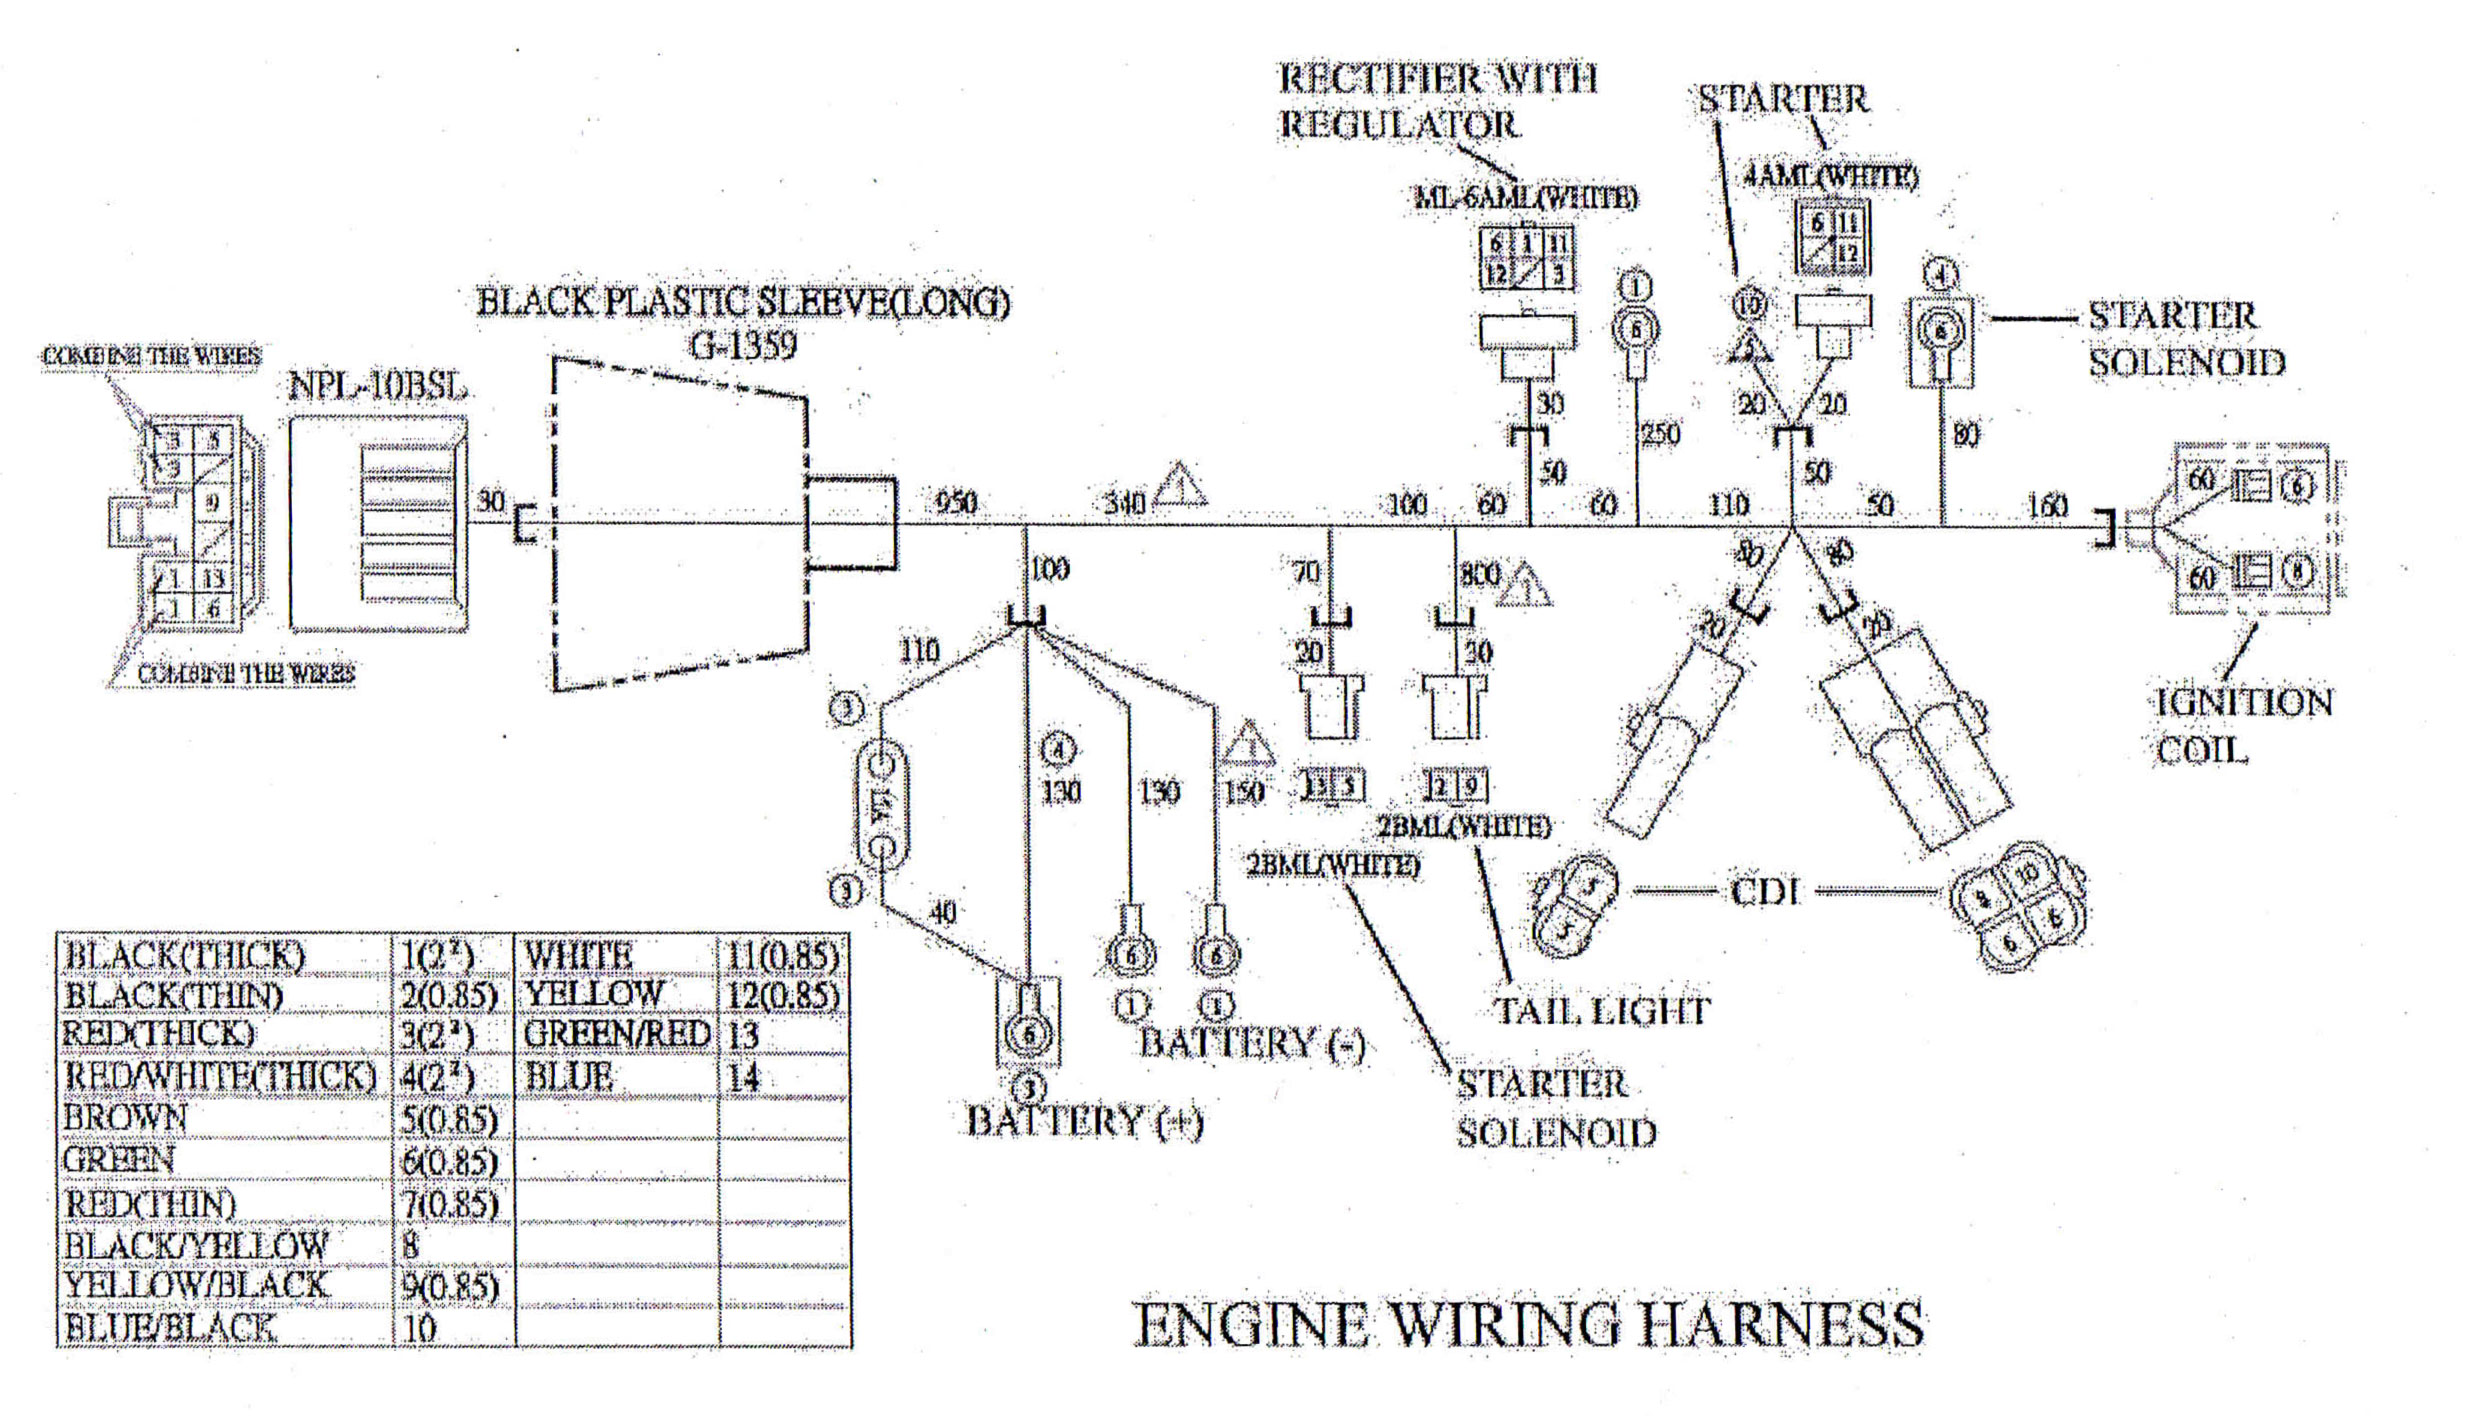 Honda Gx200 Wiring Diagram Library 150 T5c Gx620 Fuse Box U2022 Gx390 Engine